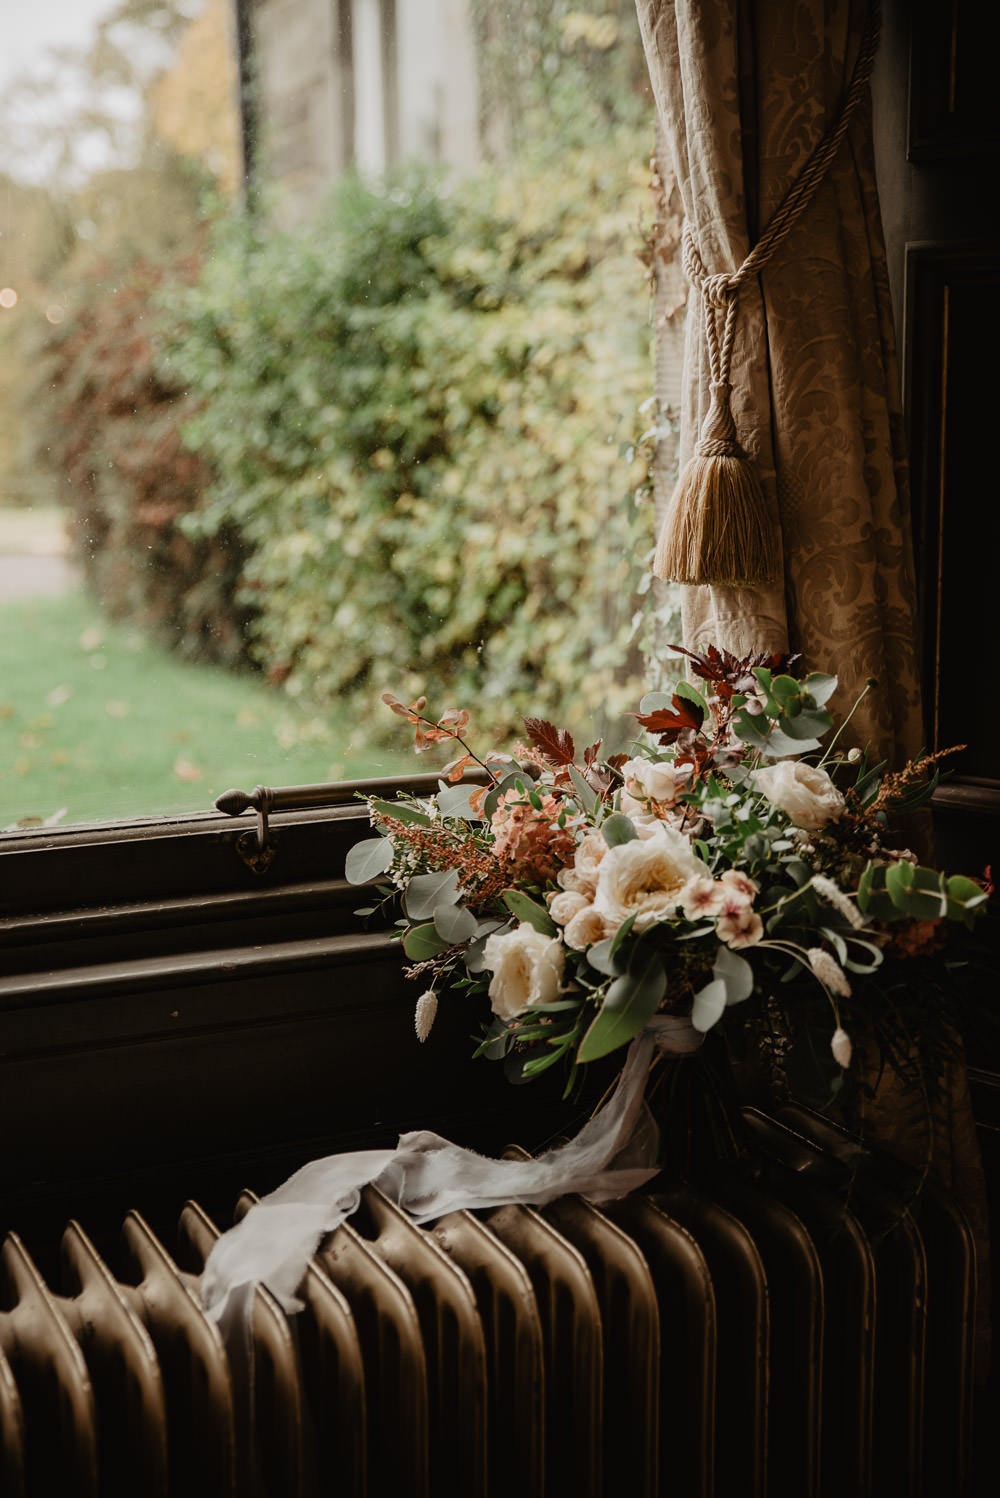 Bouquet Flowers Bride Bridal Ribbon Rose Foliage Greenery Family Farm Wedding Janine Kirkwood Photography